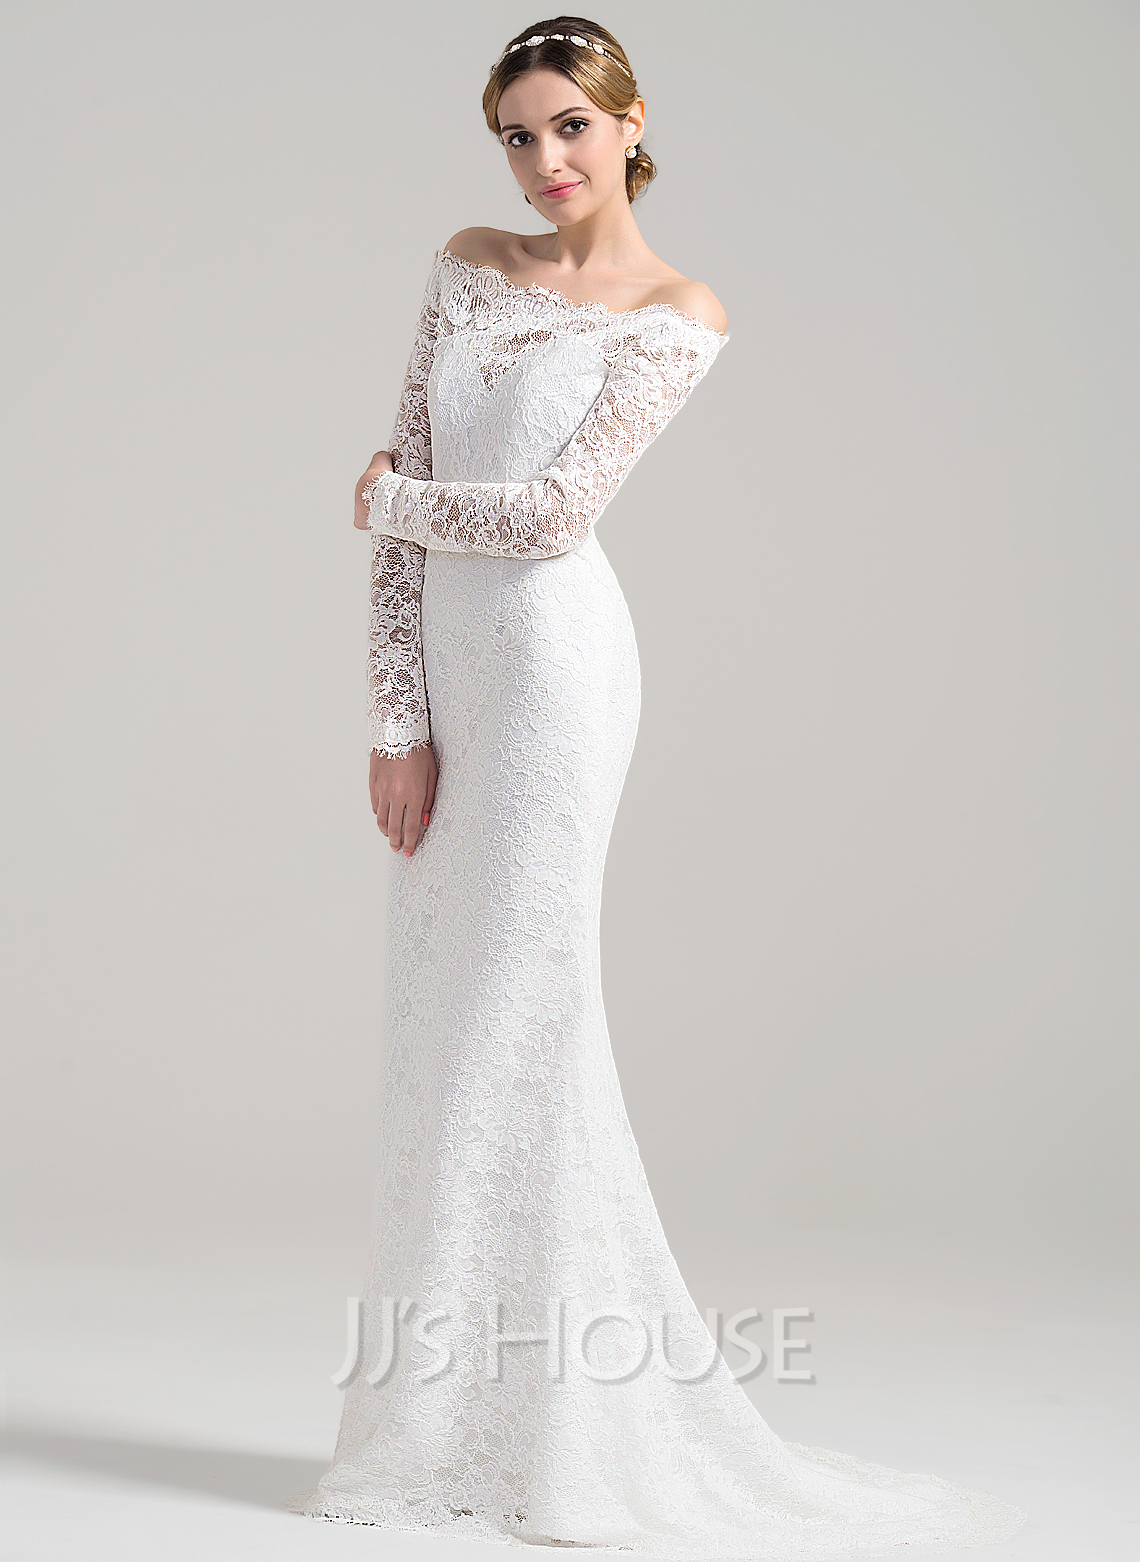 8c16cf2ff3 Sheath Column Off-the-Shoulder Sweep Train Lace Wedding Dress. Loading zoom